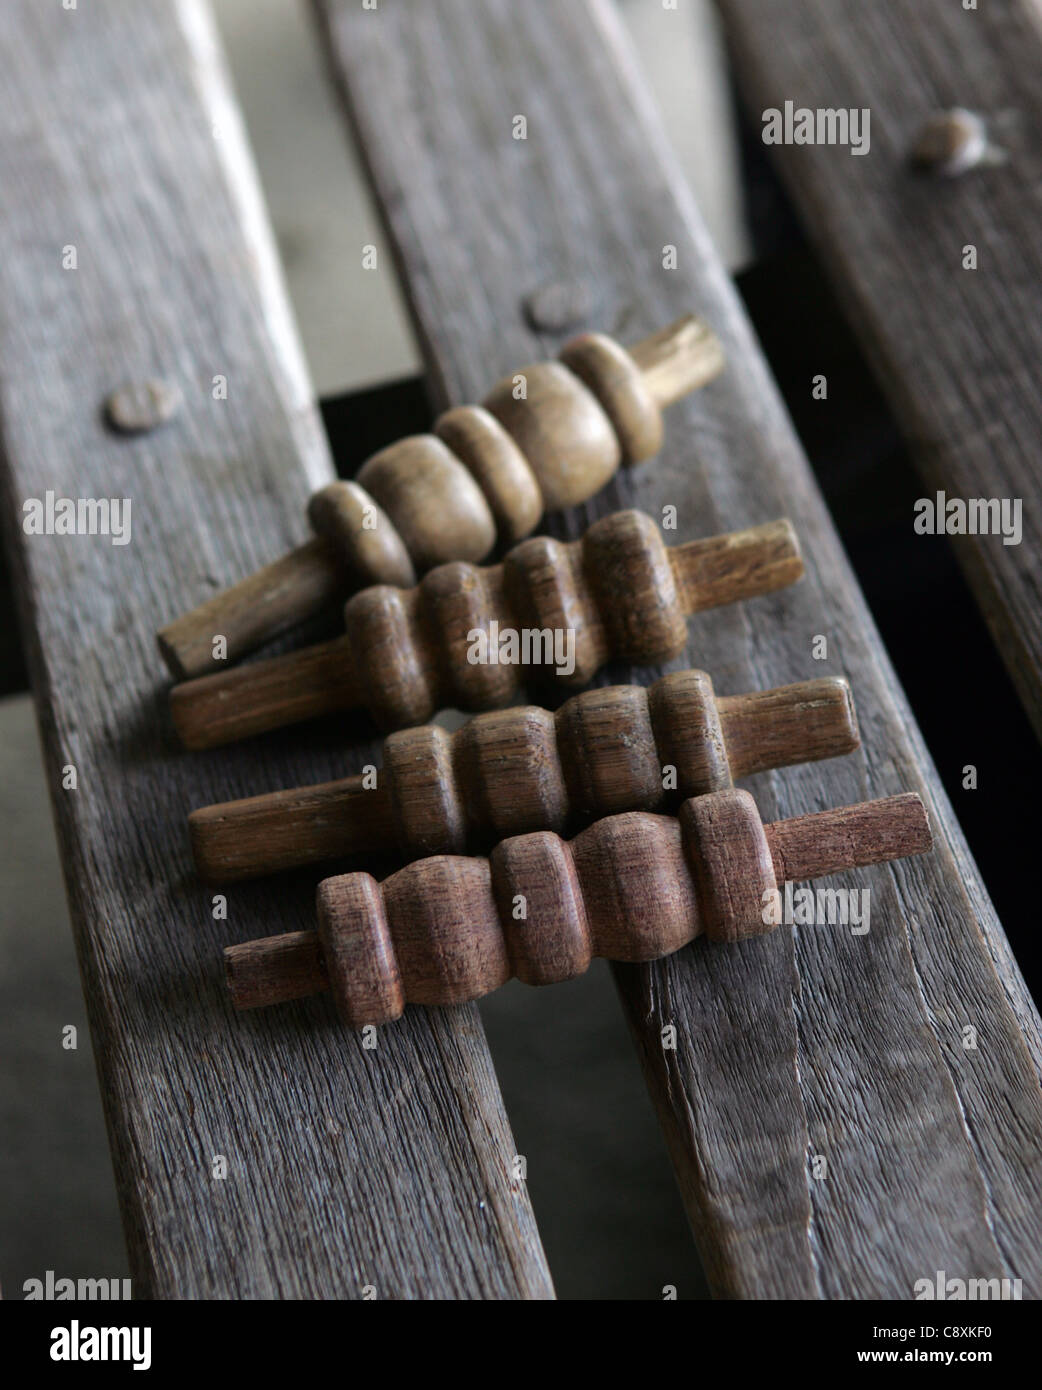 Cricket bails on a bench. - Stock Image